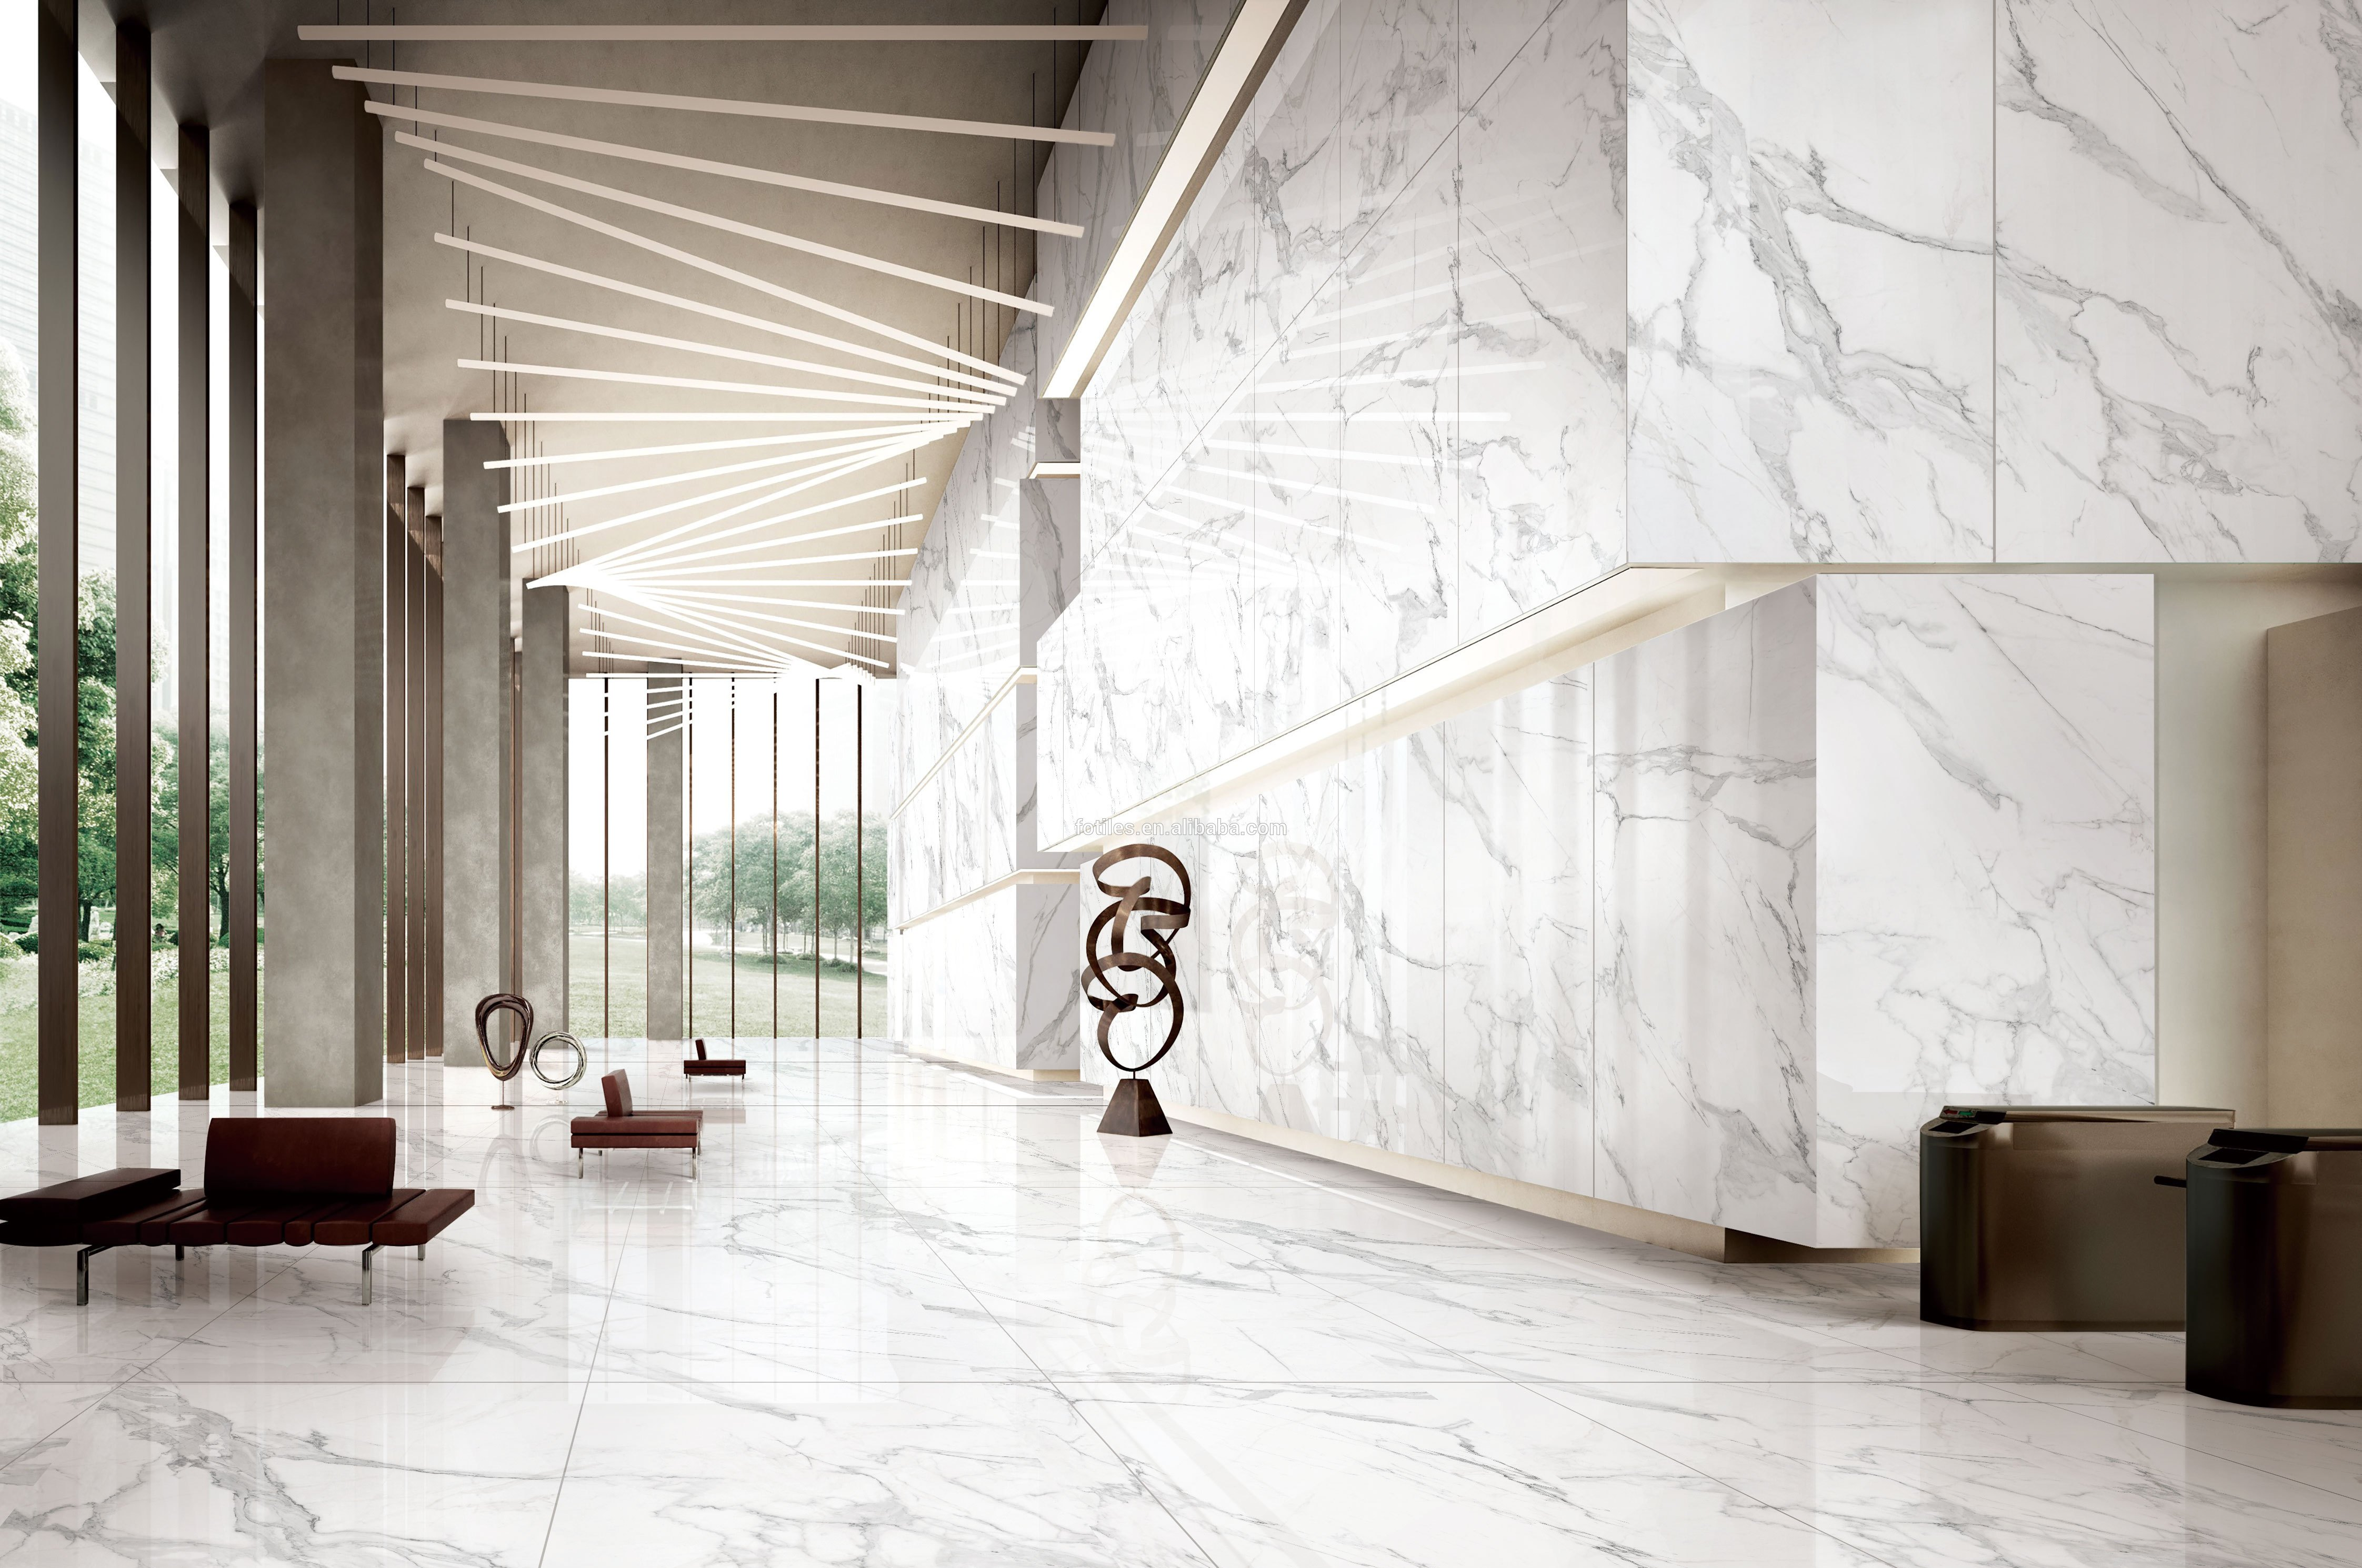 Indian Granite, Sandstone, Indian Marbles, White Marbles Supplier  Manufacturer Exporter in India, Black Galaxy, Pearl, Colonial Gold, White,  Steel Grey, Absolute Black, Tan Brown, R Black, P White, Alaska White, Blue  Dunes,